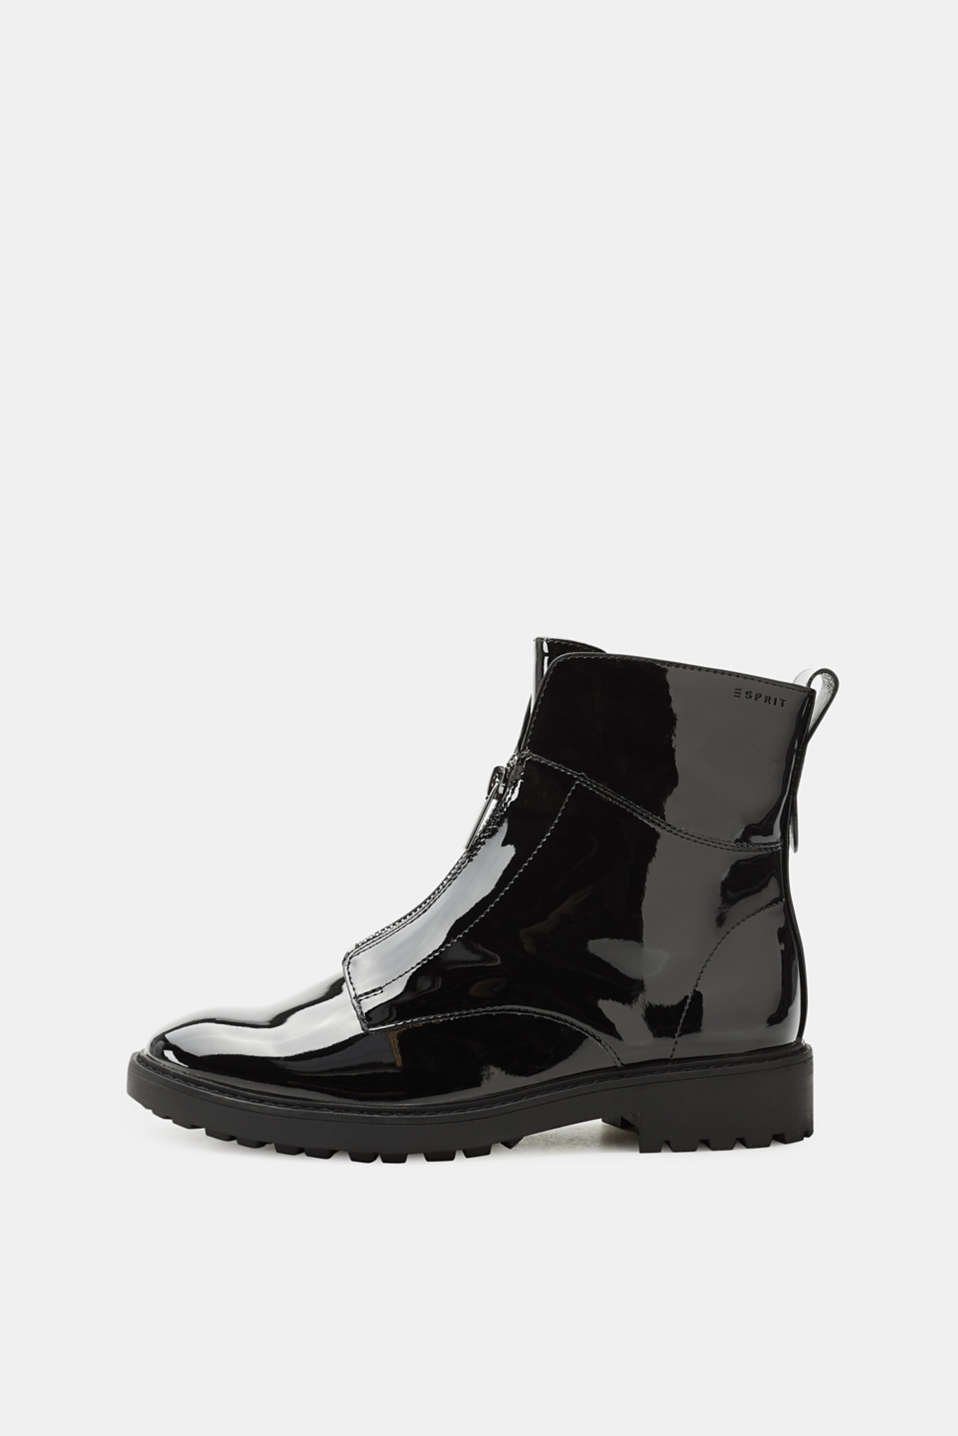 Esprit - Patent leather ankle boot with front zip